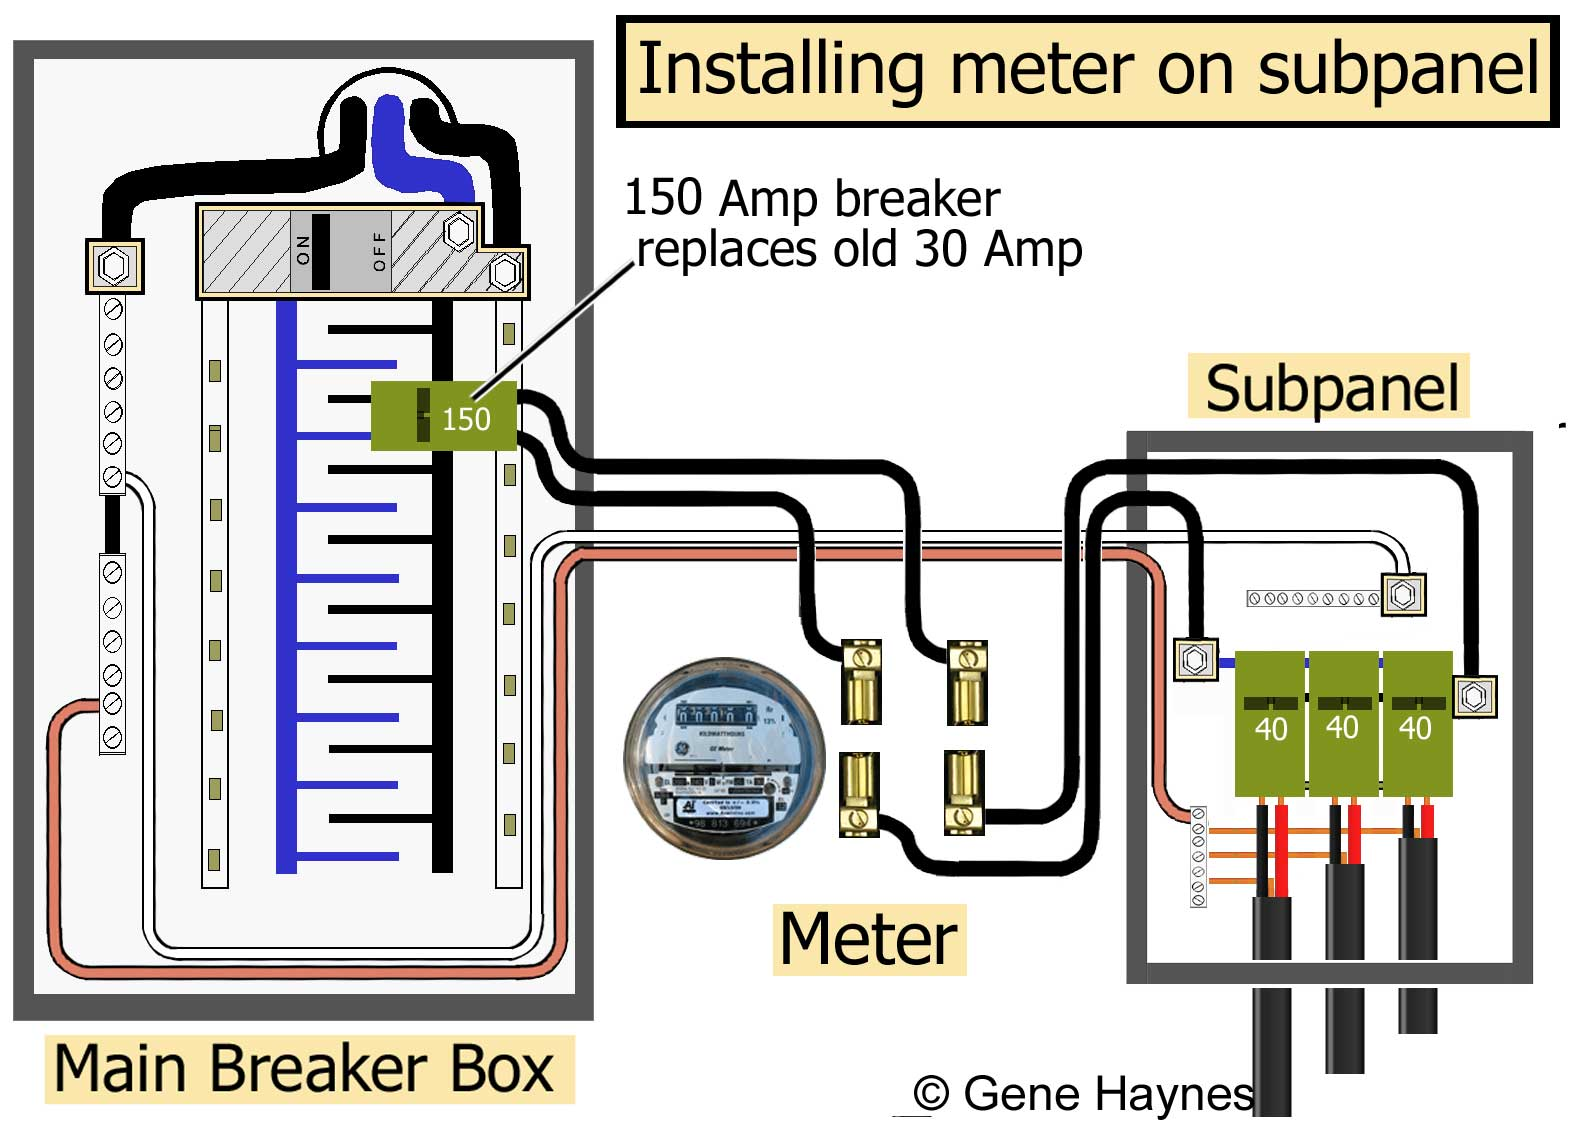 hight resolution of option install meter on 120 240v subpanel white neutral wire not needed for 240volt breakers neutral wire only necessary for 120volt breakers